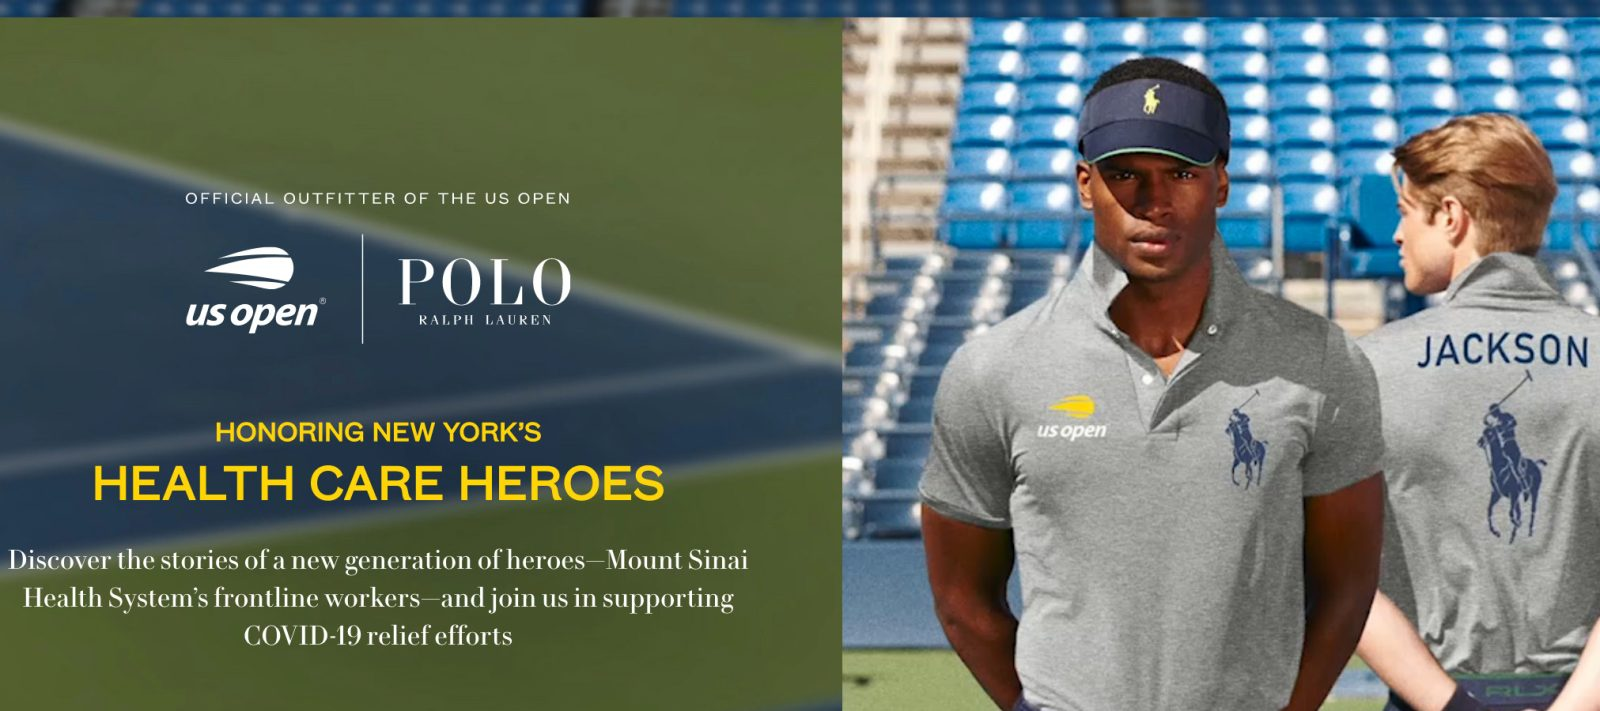 Ralph Lauren's new collection with US Open supports front-line - 9to5Toys